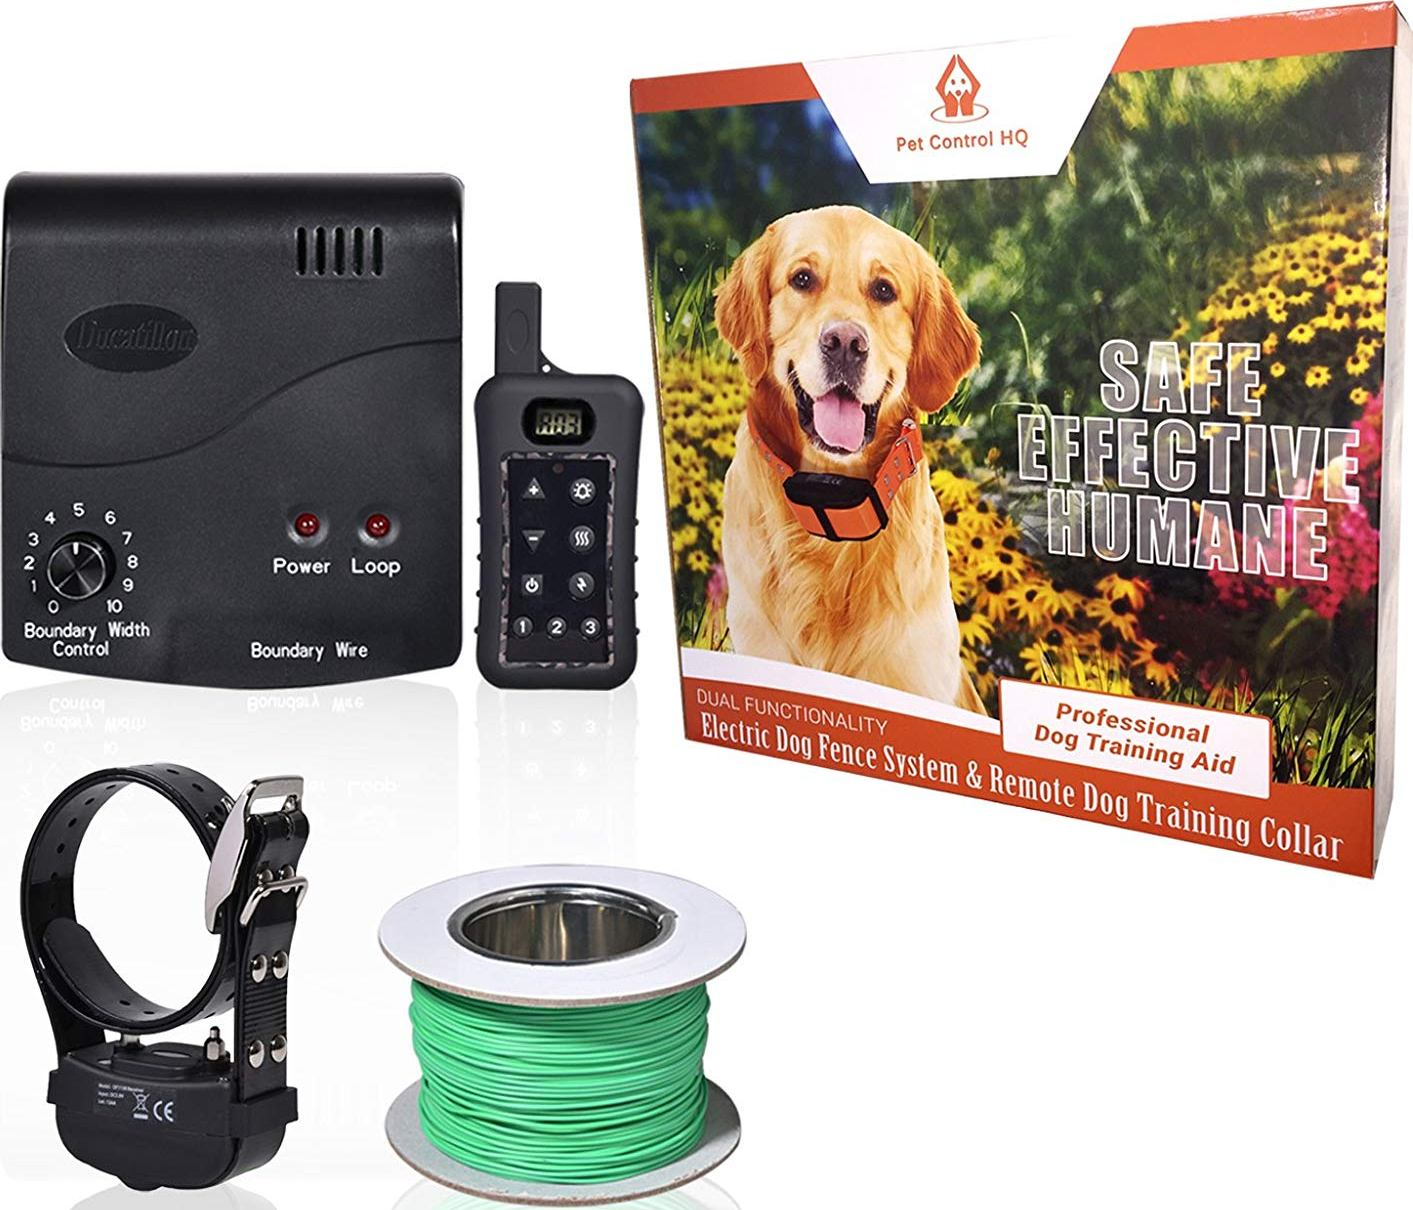 Combo Electric Dog Fence System with Wireless Remote Dog Training Collar by Pet Control HQ